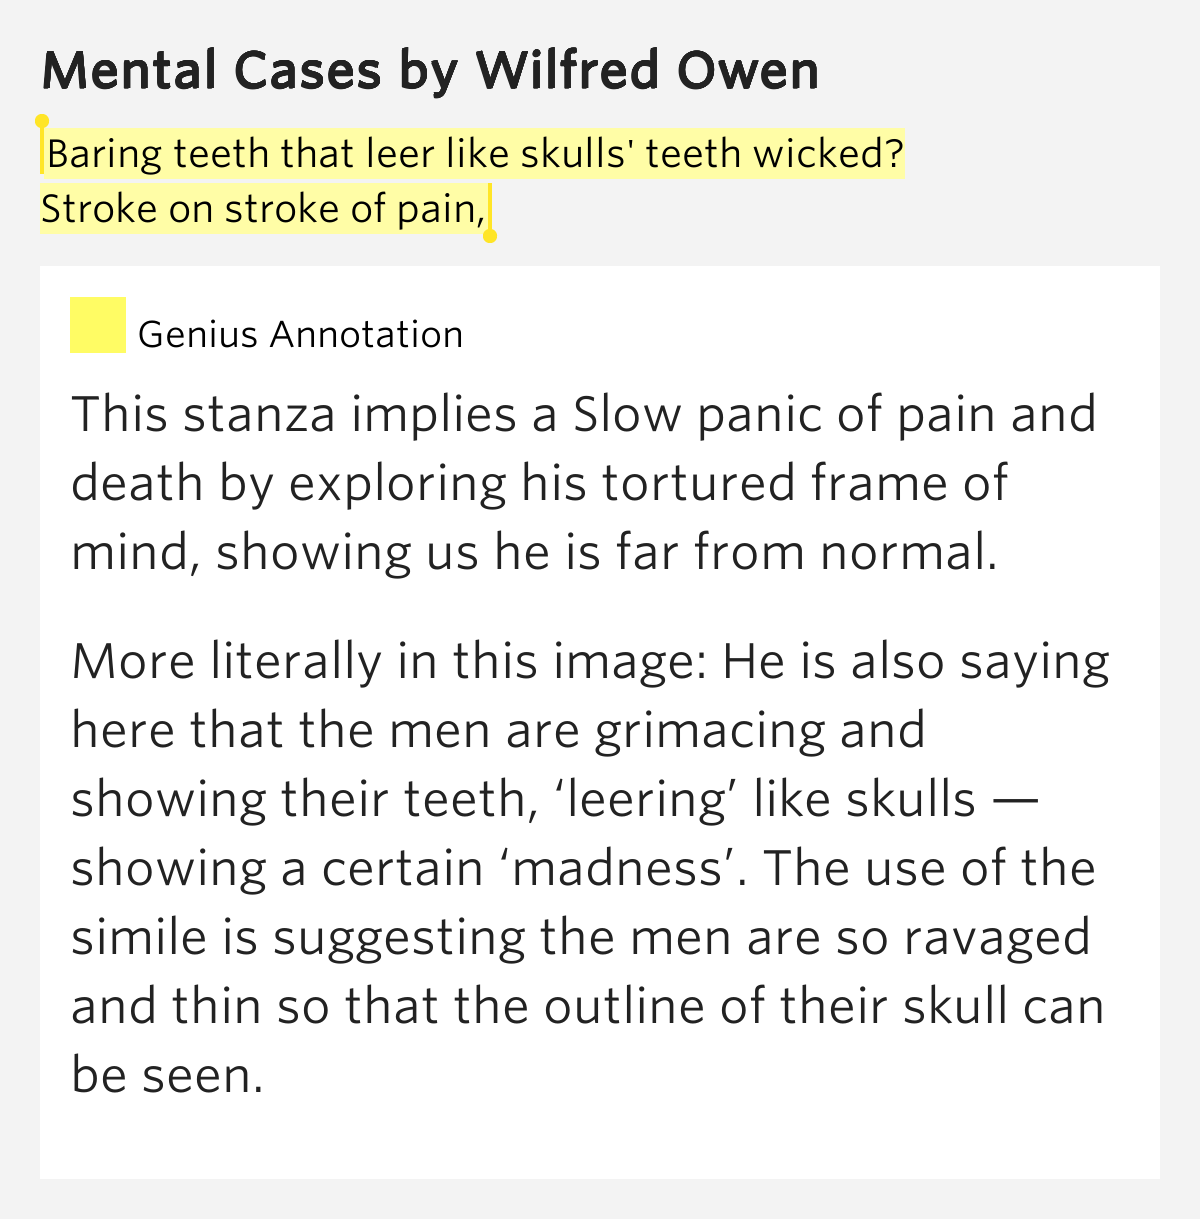 wilfred owen mental cases essay Access to over 100,000 complete essays and term papers  mental case and spring offensive, it will be apparent that owen uses many different techniques to shock .